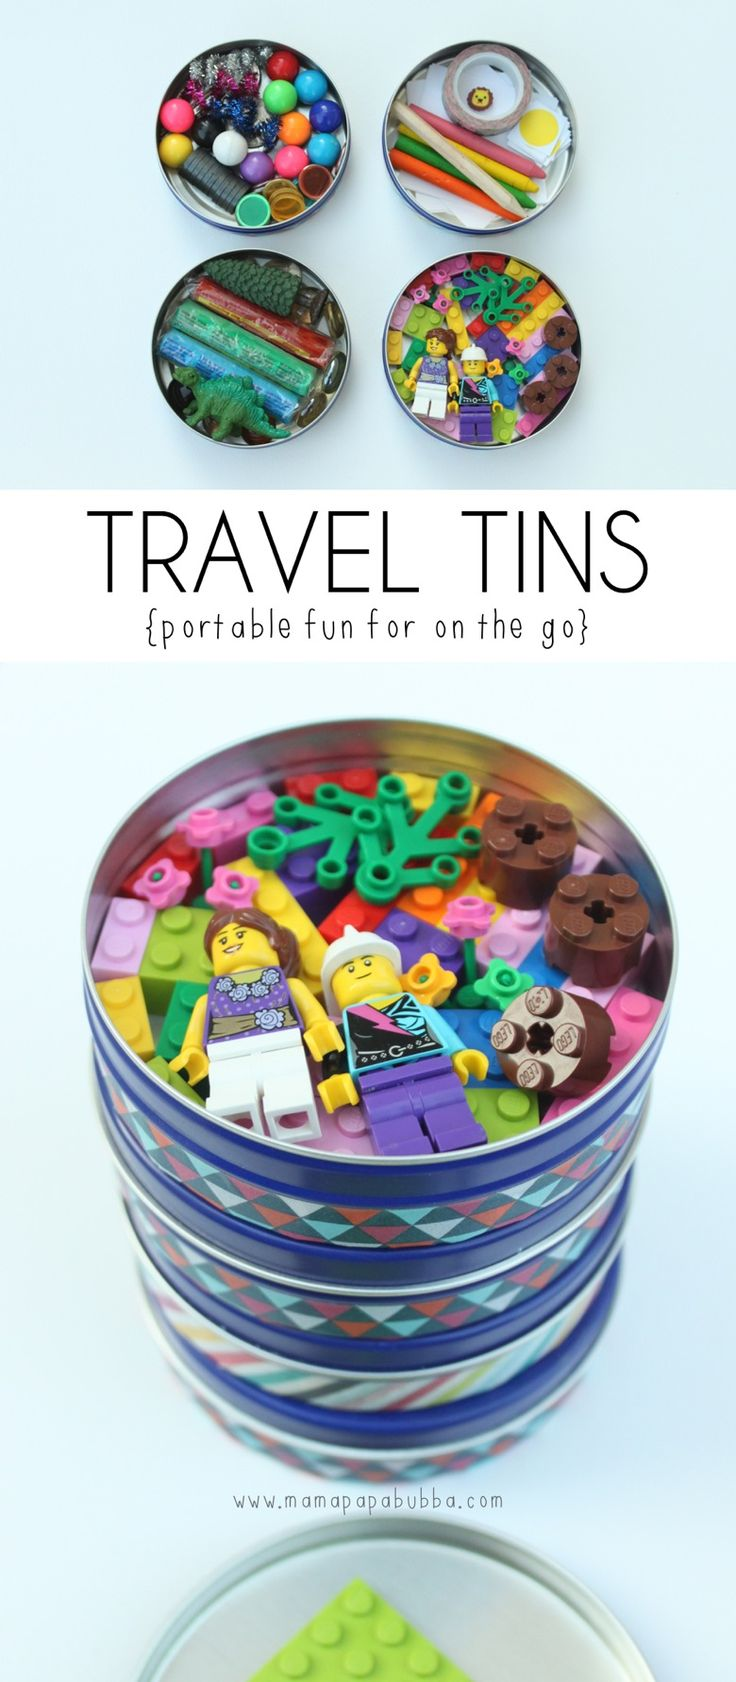 Craft kits for preschoolers - Travel Tins Car Activities For Kids Travelling With Kids Busy Bag